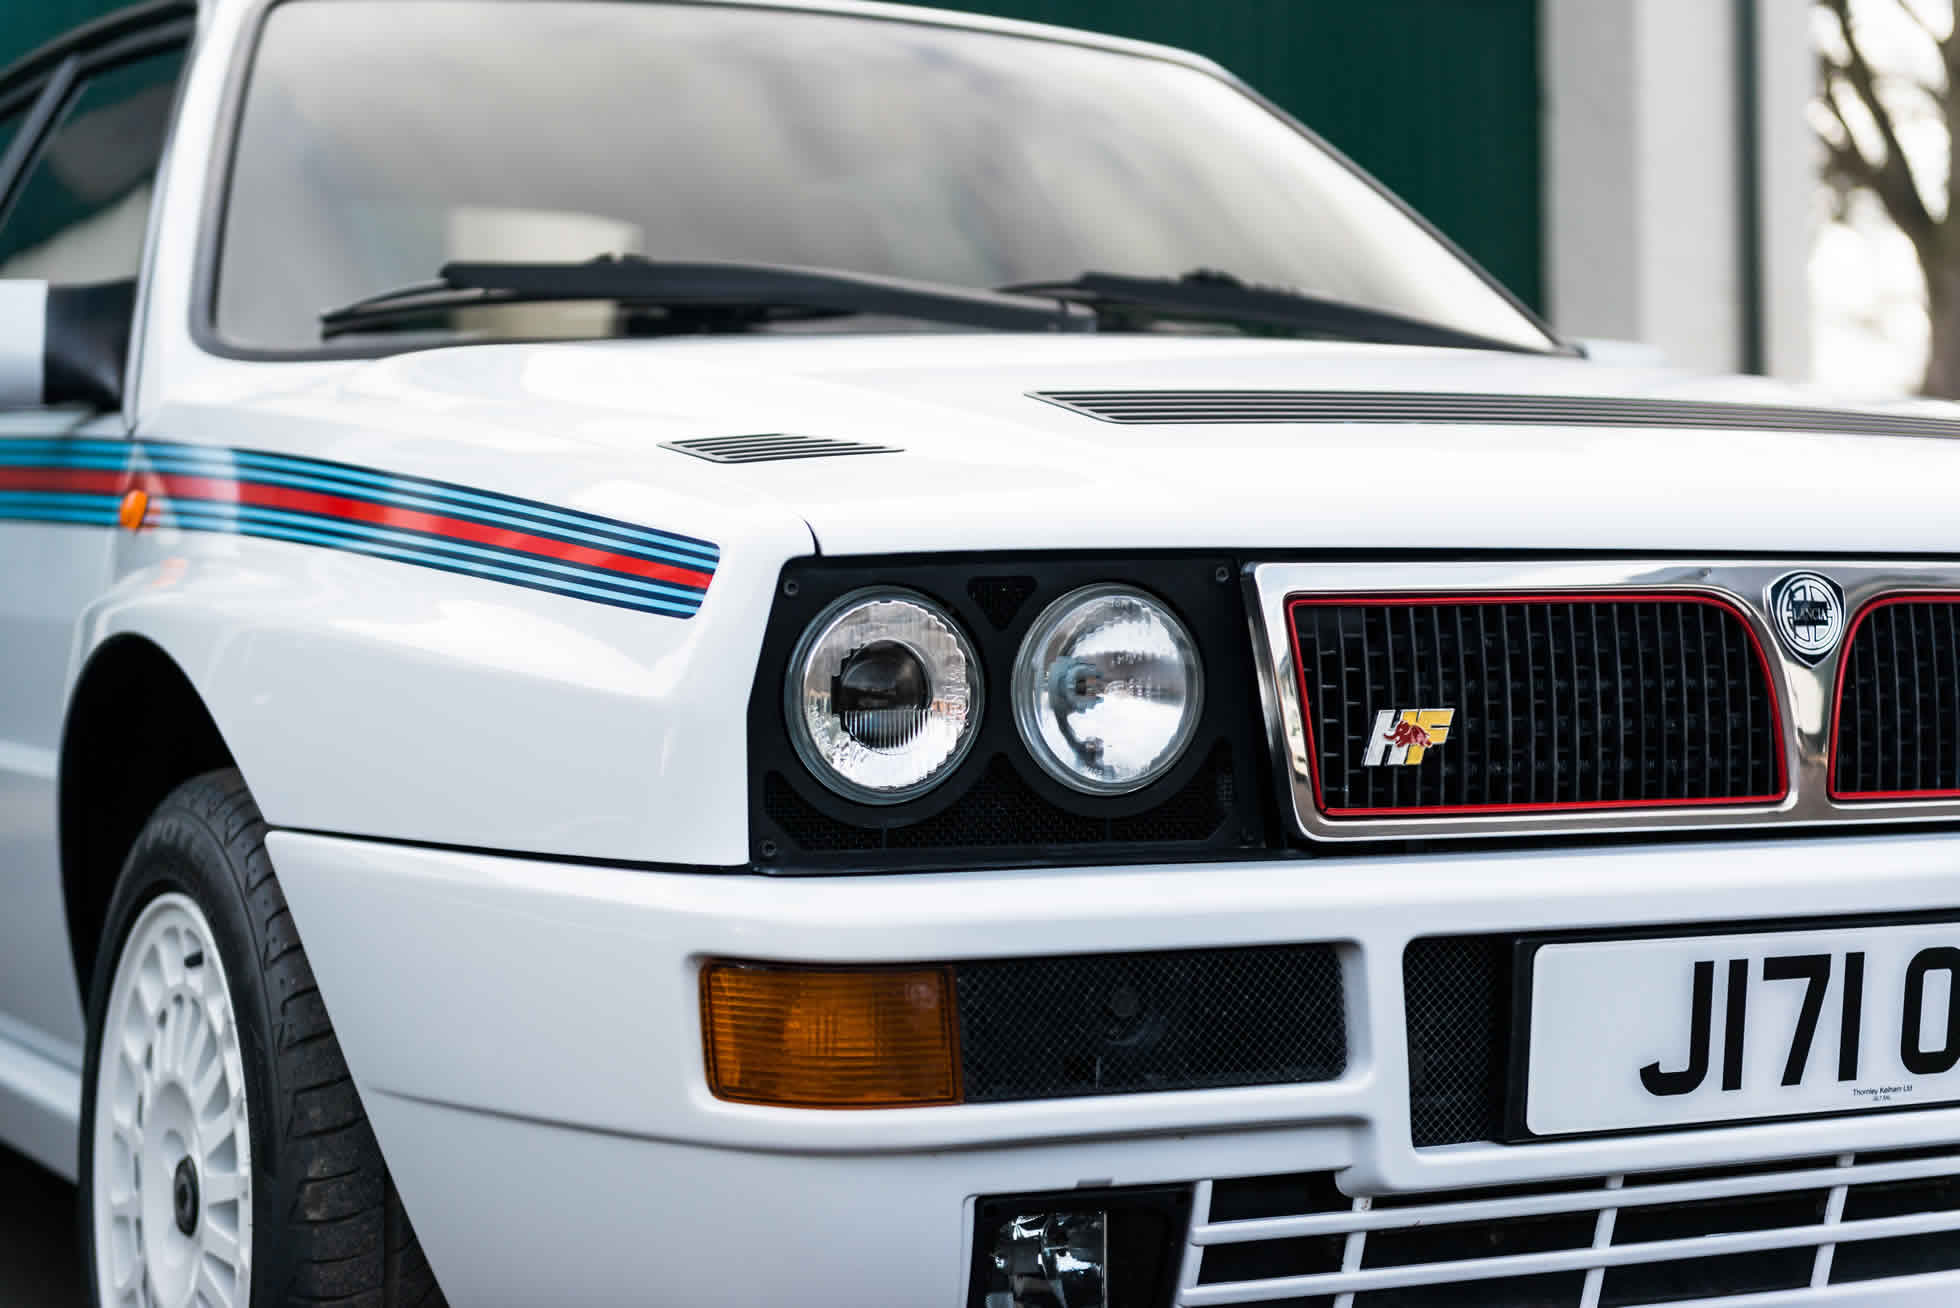 For Sale 1992 Lancia Delta Integrale EVO 'Martini 5' front view